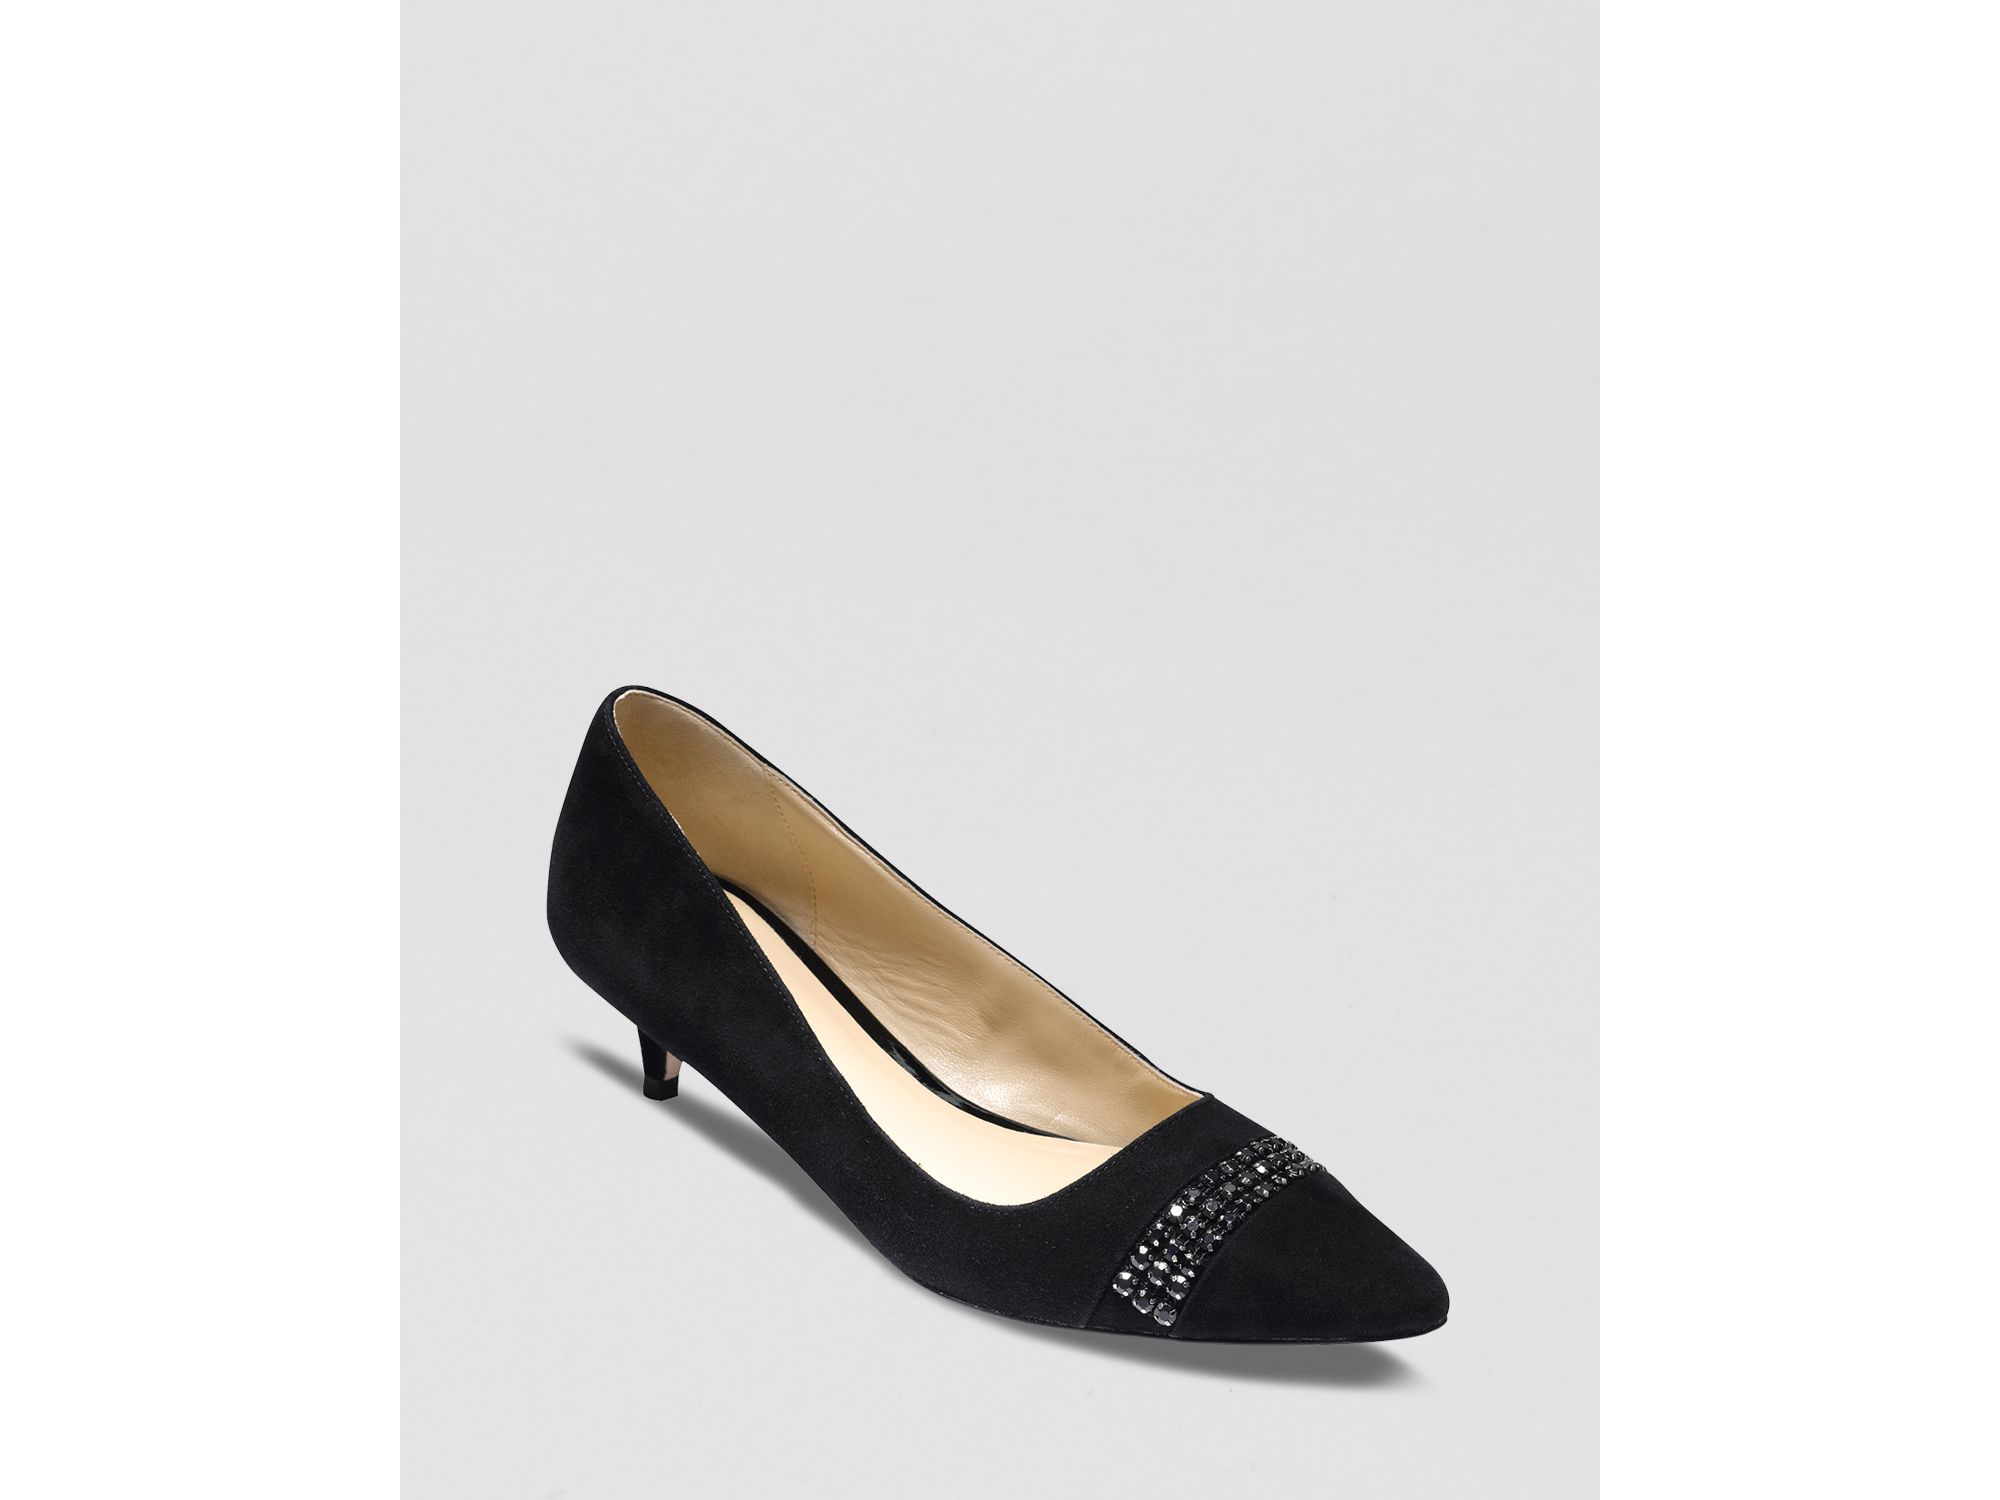 Cole haan Pointed Toe Pumps - Bradshaw Kitten Heel in Black | Lyst